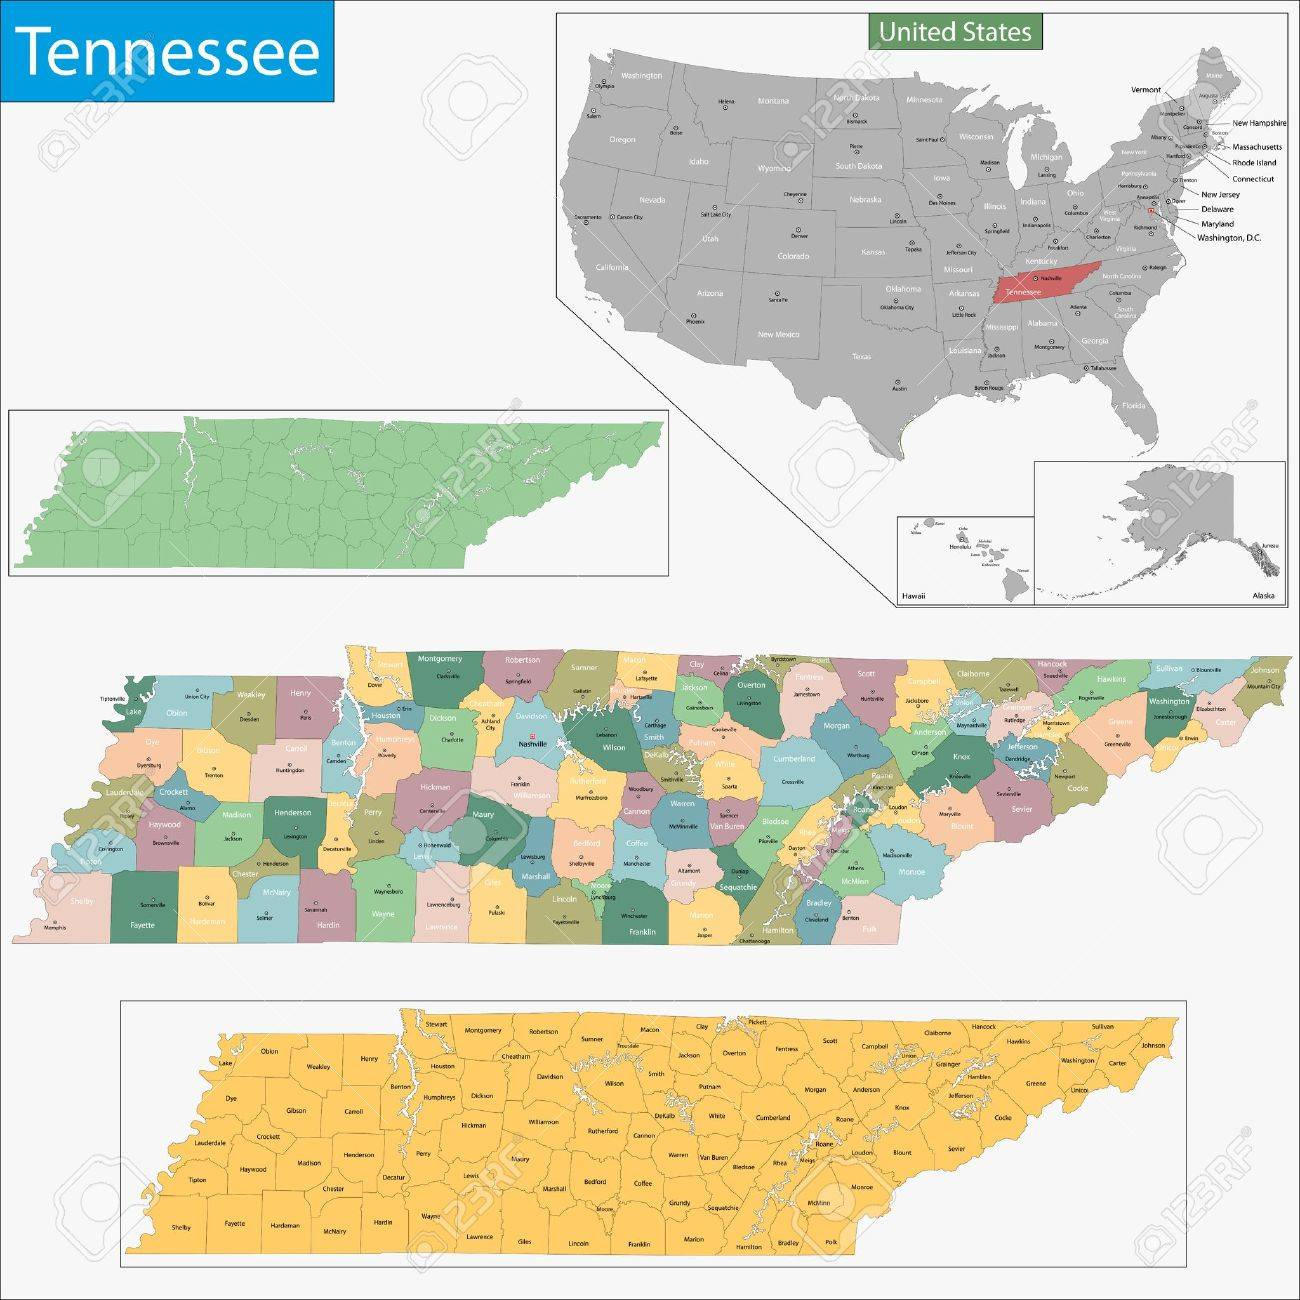 Map Of Tennessee State Designed In Illustration With The Counties